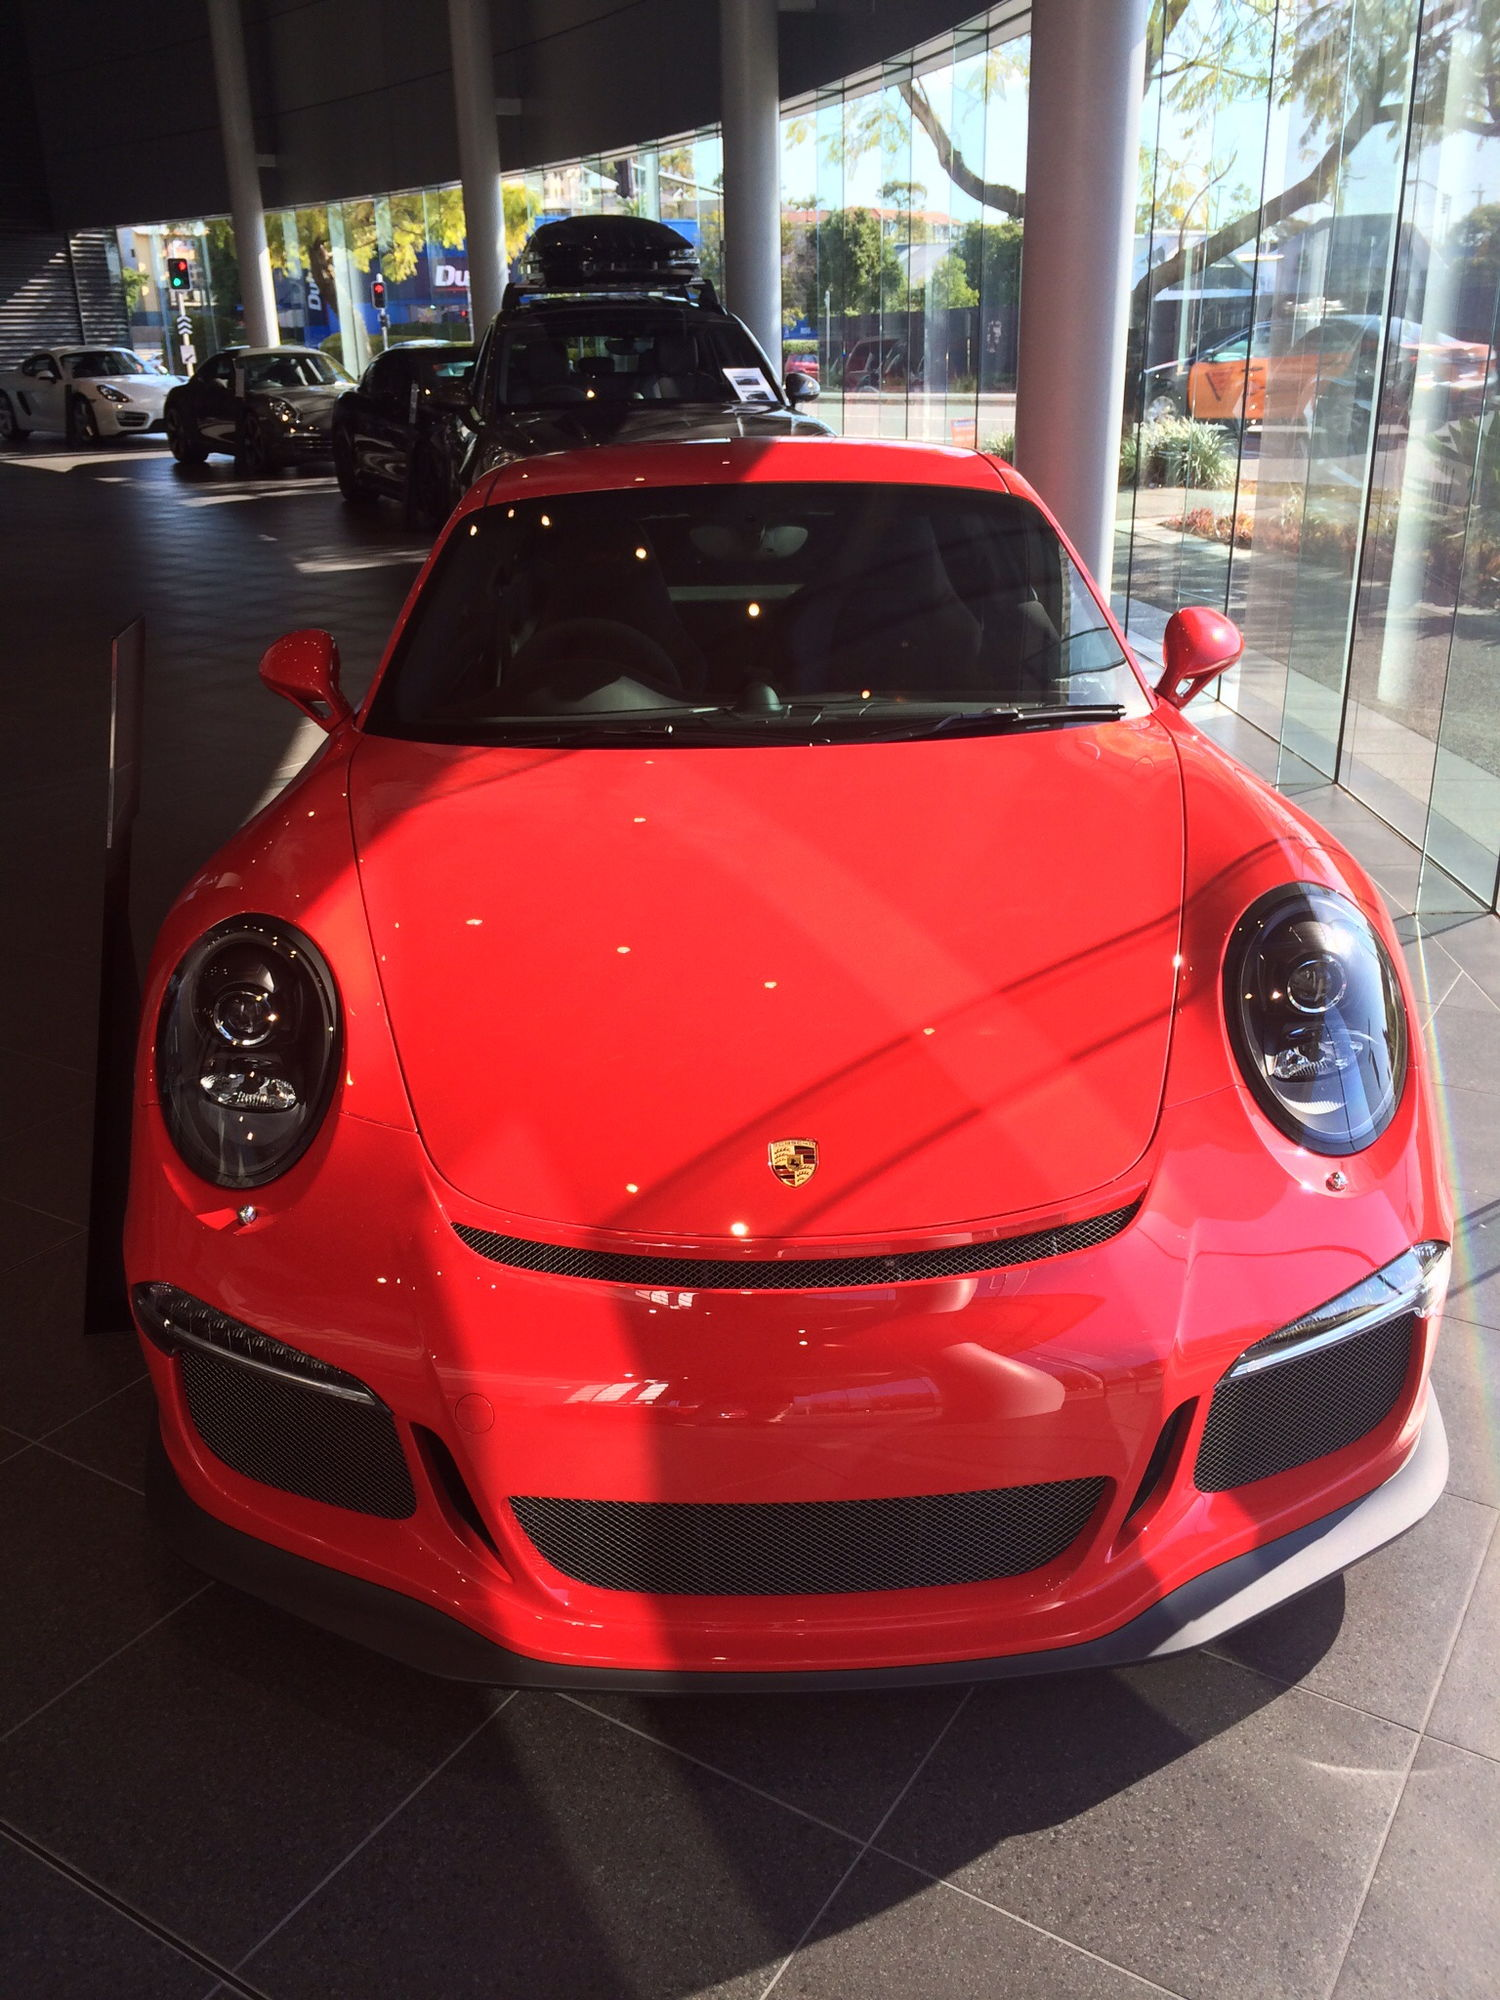 guards red 991 gt3 need some help page 3 rennlist porsche discussion forums. Black Bedroom Furniture Sets. Home Design Ideas